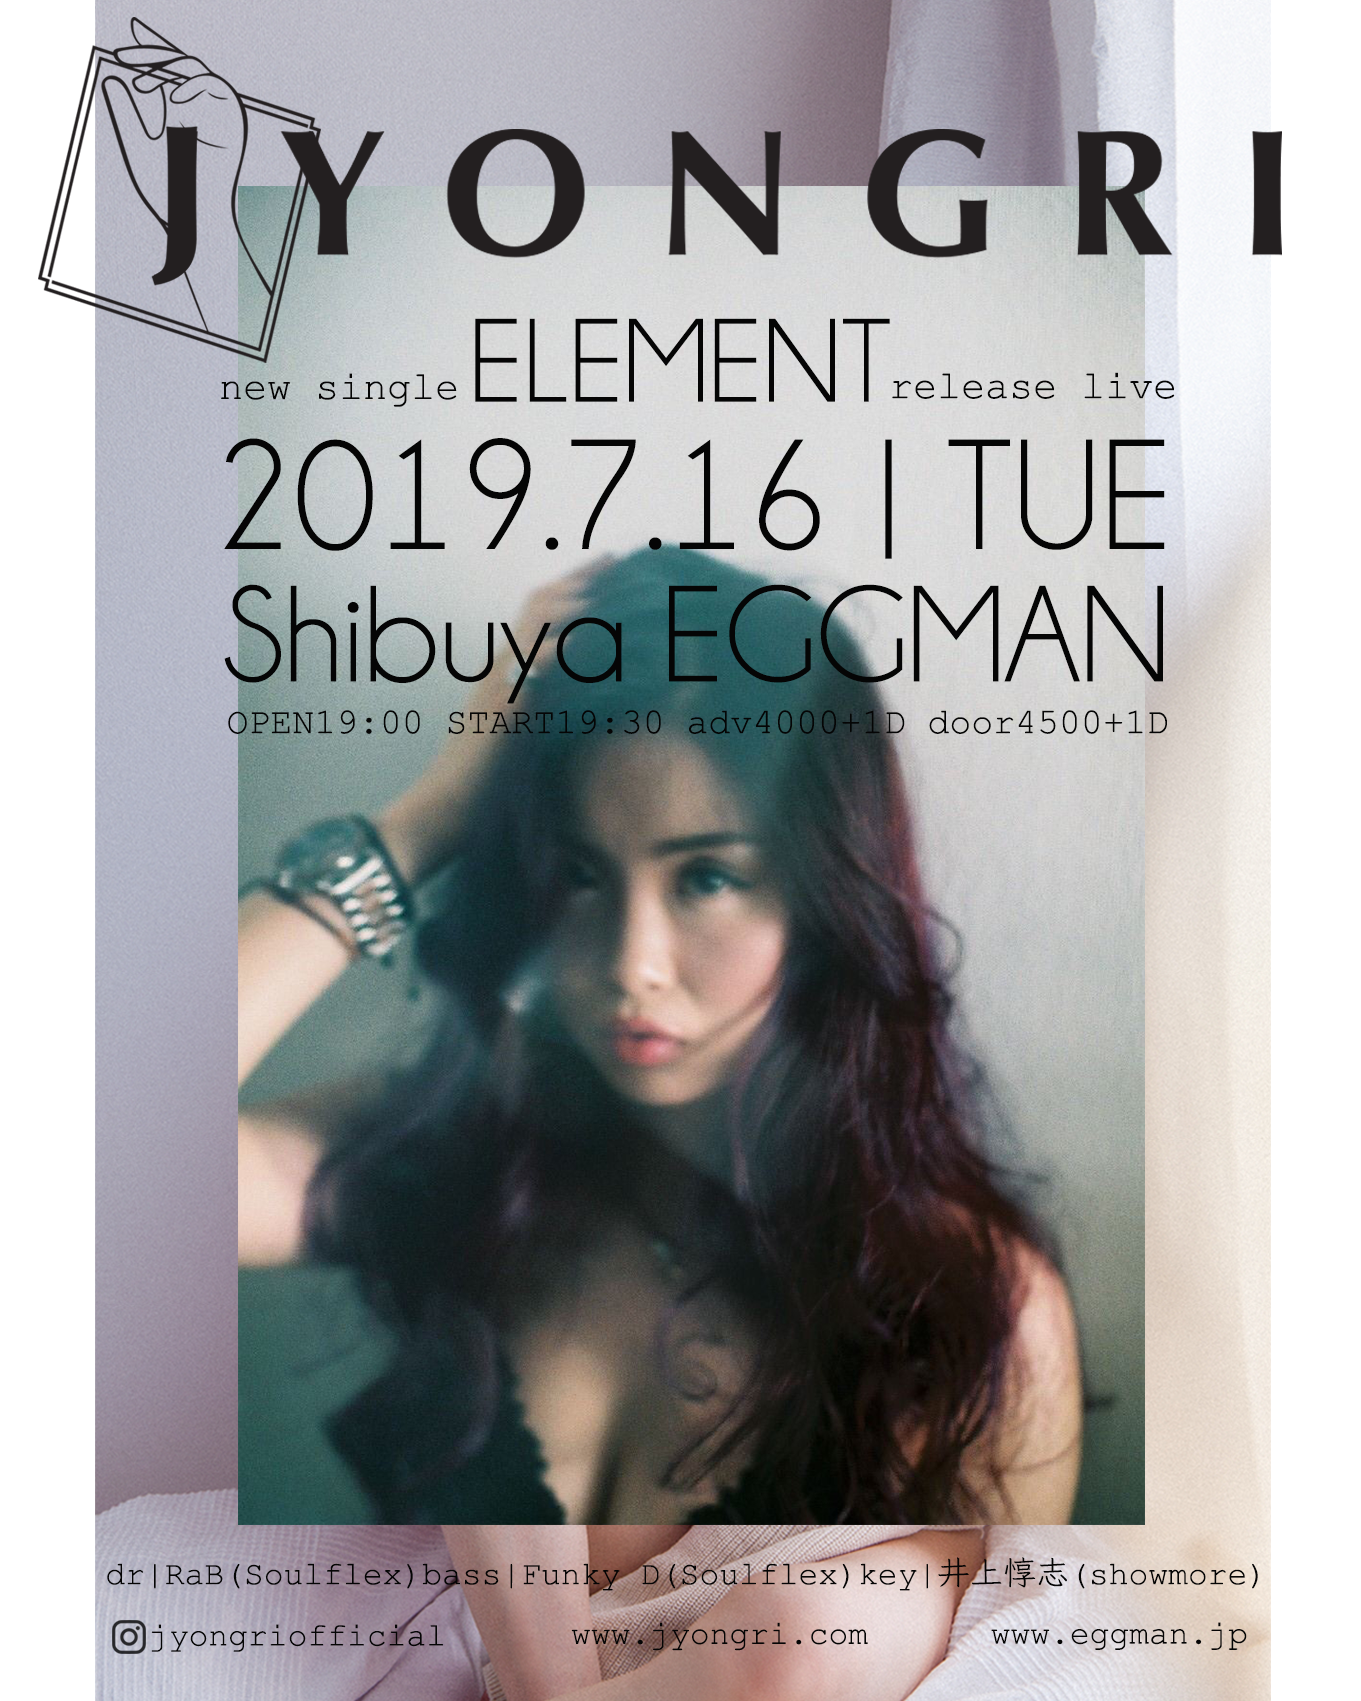 JYONGRI NEW SINGLE RELEASE LIVE -Element-